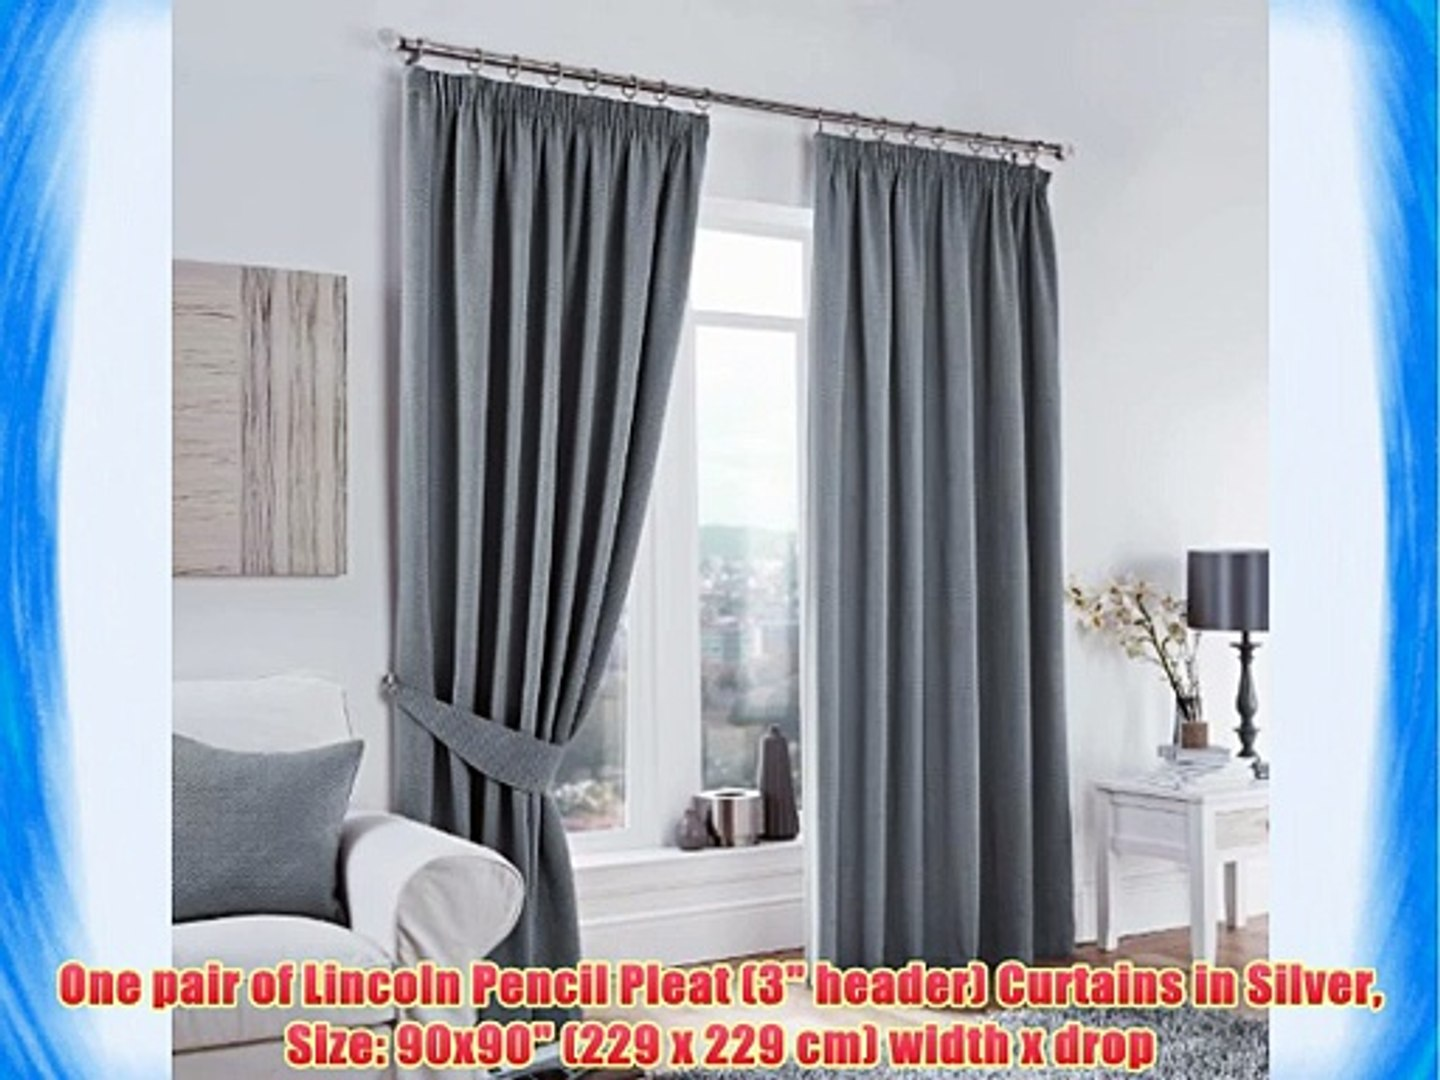 One pair of Lincoln Pencil Pleat (3 header) Curtains in Silver Size: 90x90 (229 x 229 cm) width